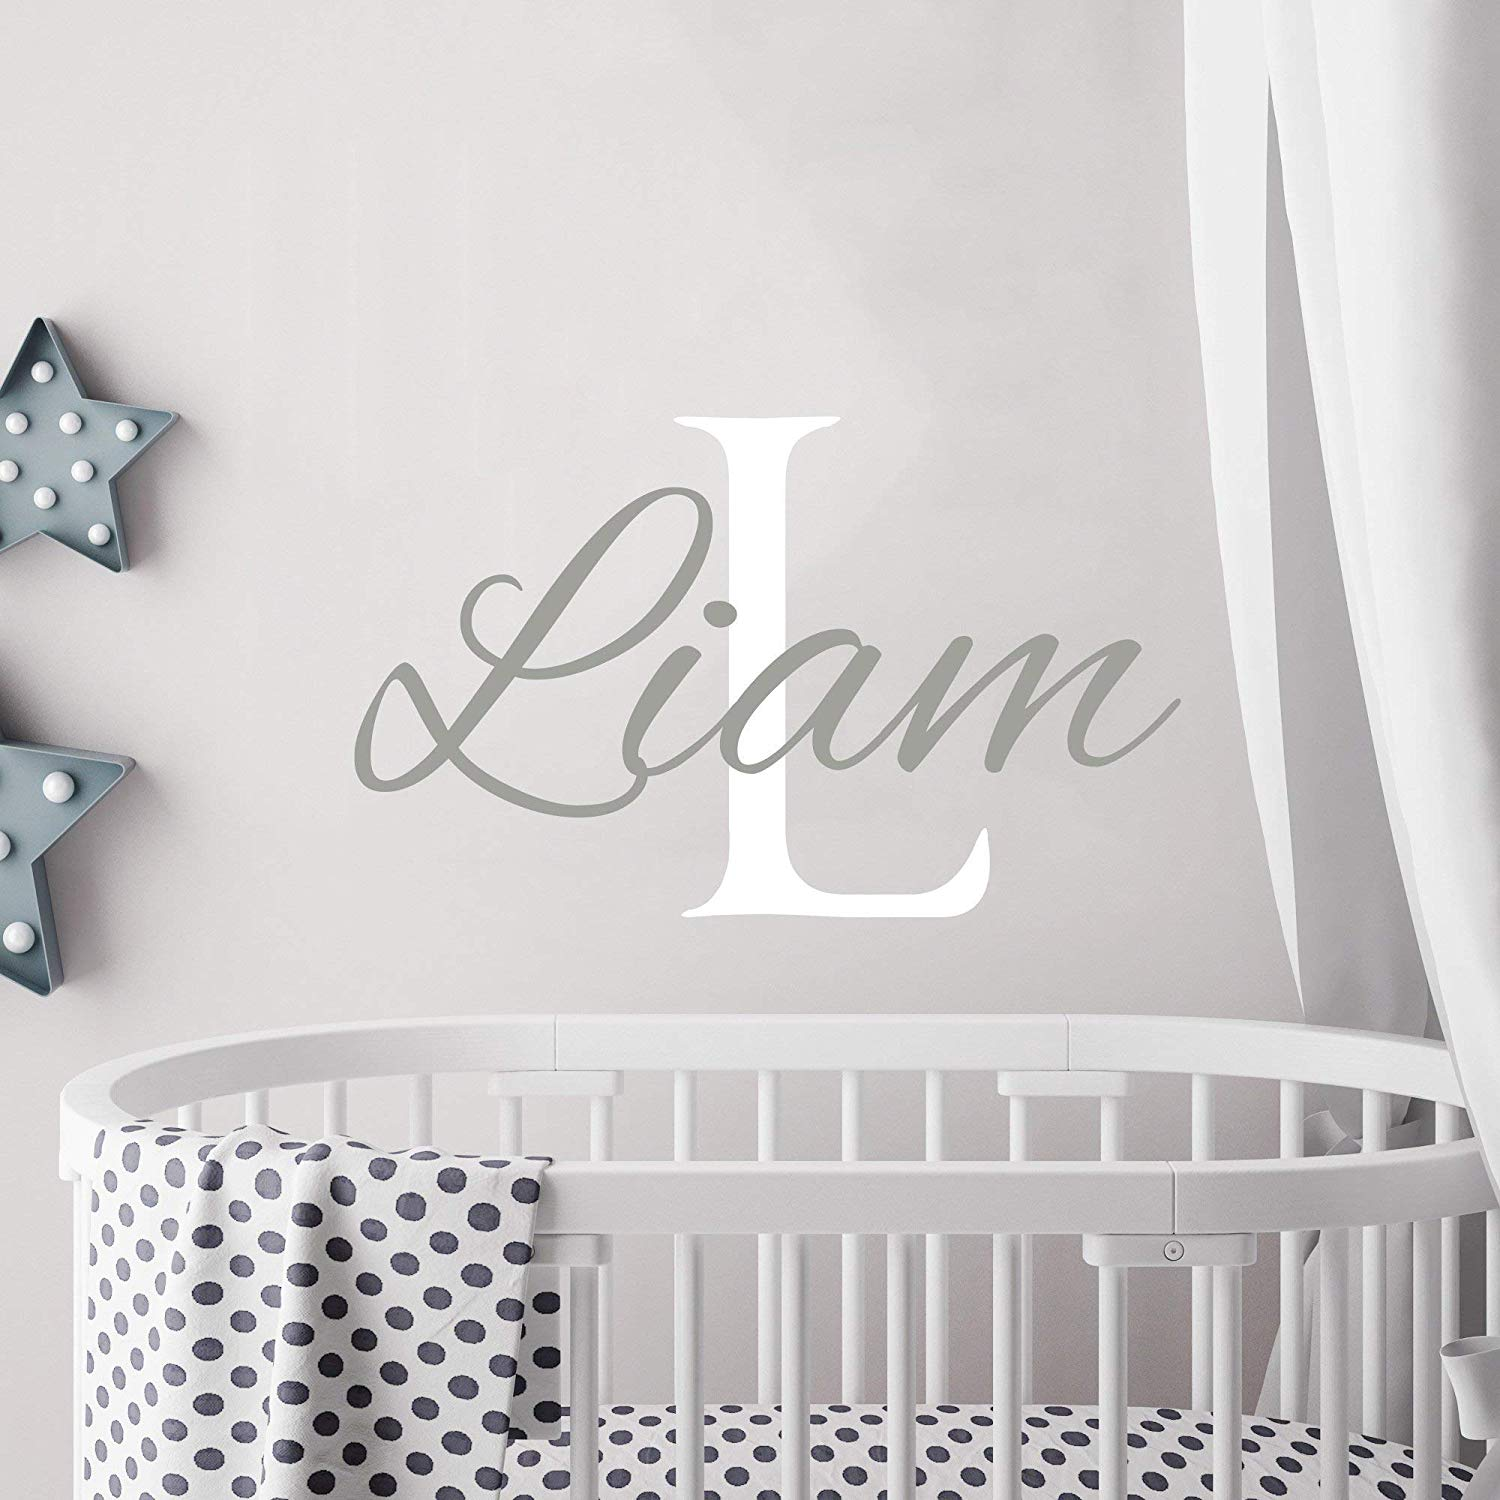 Personalized Boy Name Wall Decal Initial Boys Name Decals Nursery Decor Baby Boy Wall Decal Name Decal Boys Room Decor Custom Name Sticker kp8